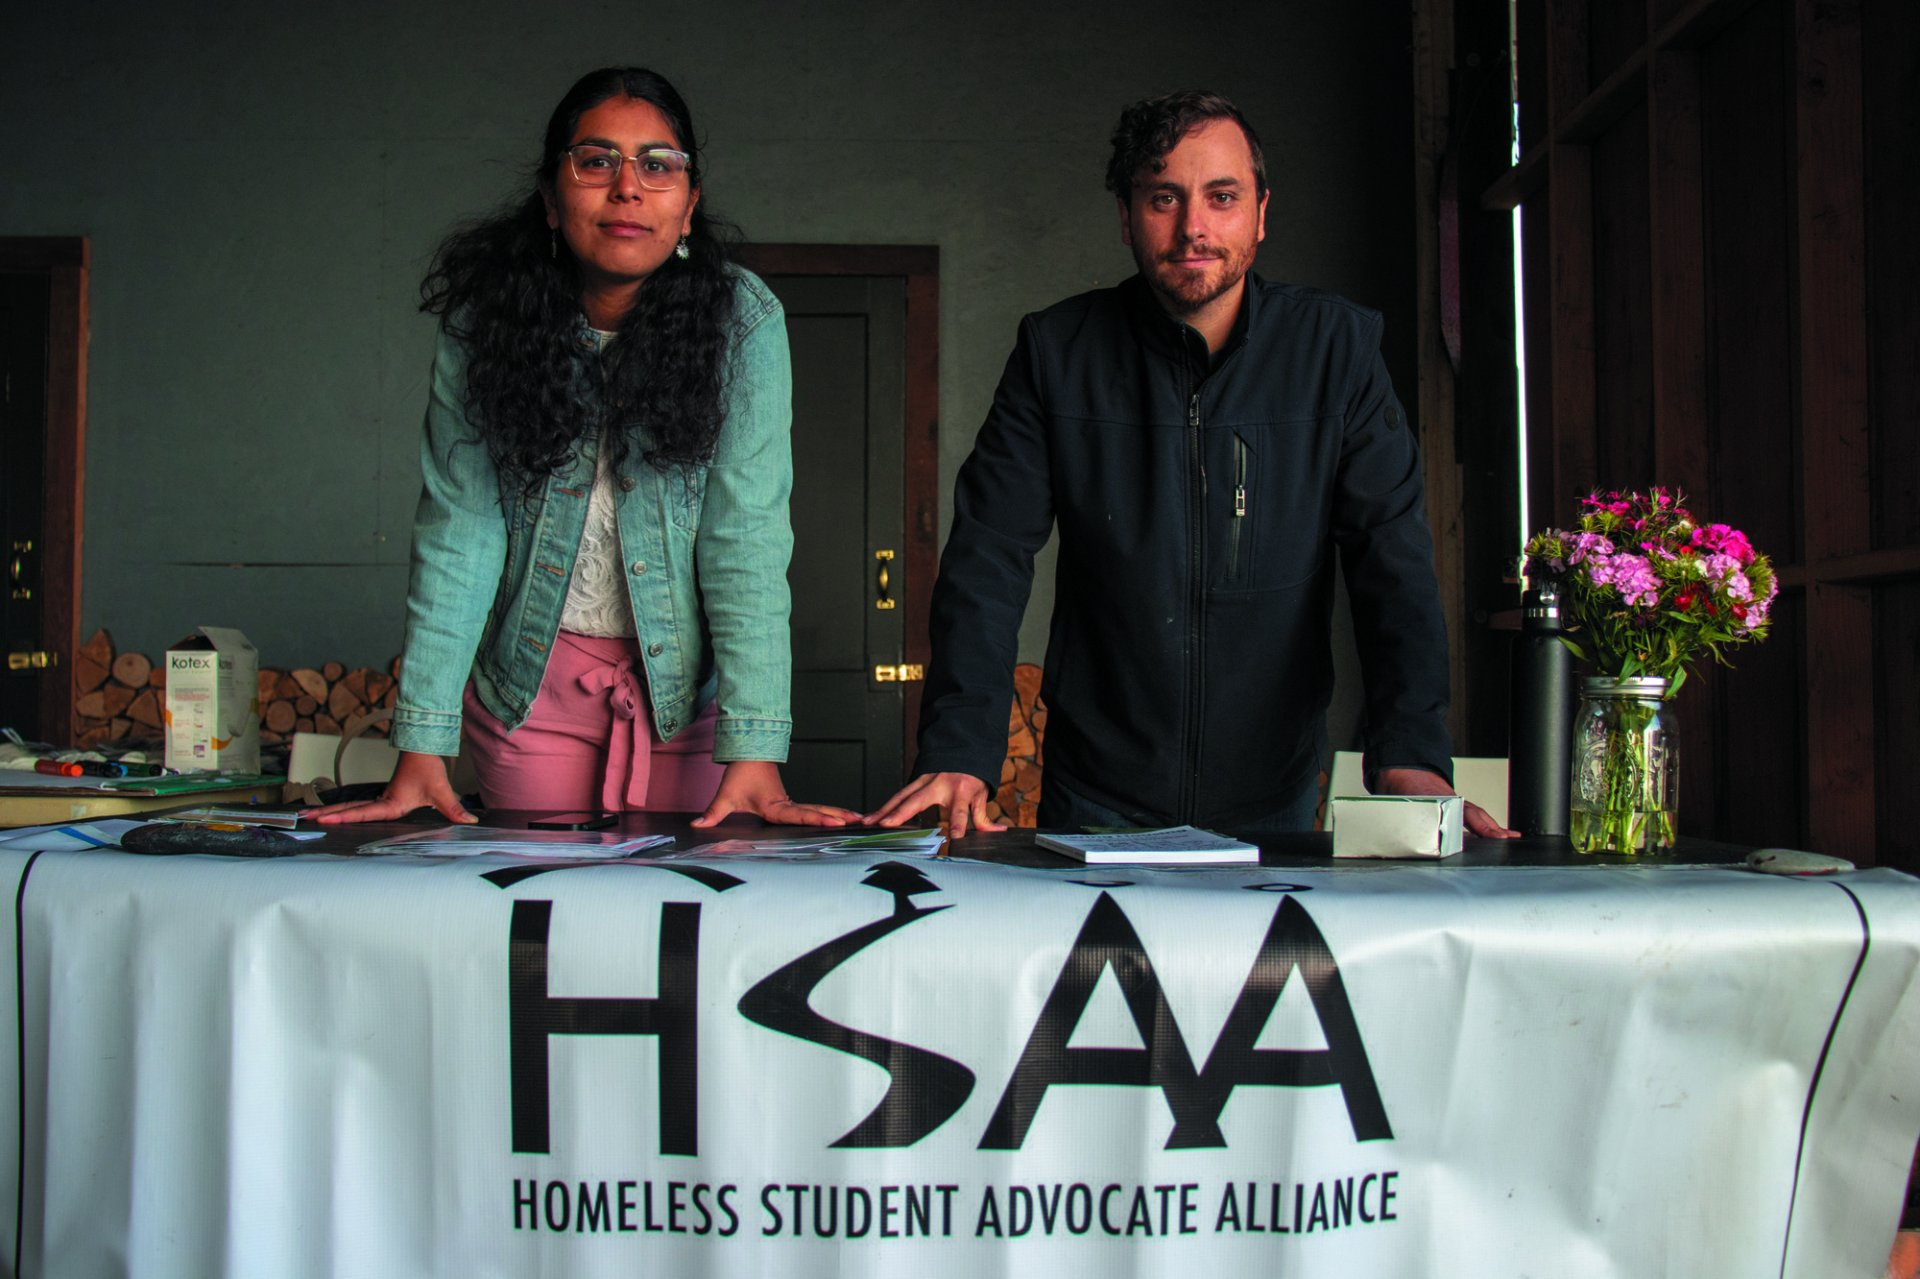 Daniela Prada, whose  been with Student Housing Advocate Alliance (SHAA) since the beginning, and Micheal Barnes, co-founder of SHAA, represented the organization during the Under the Bridge Awareness event at the Humboldt Bay Social Club on Saturday April 27. | Photo by  T.William Wallin